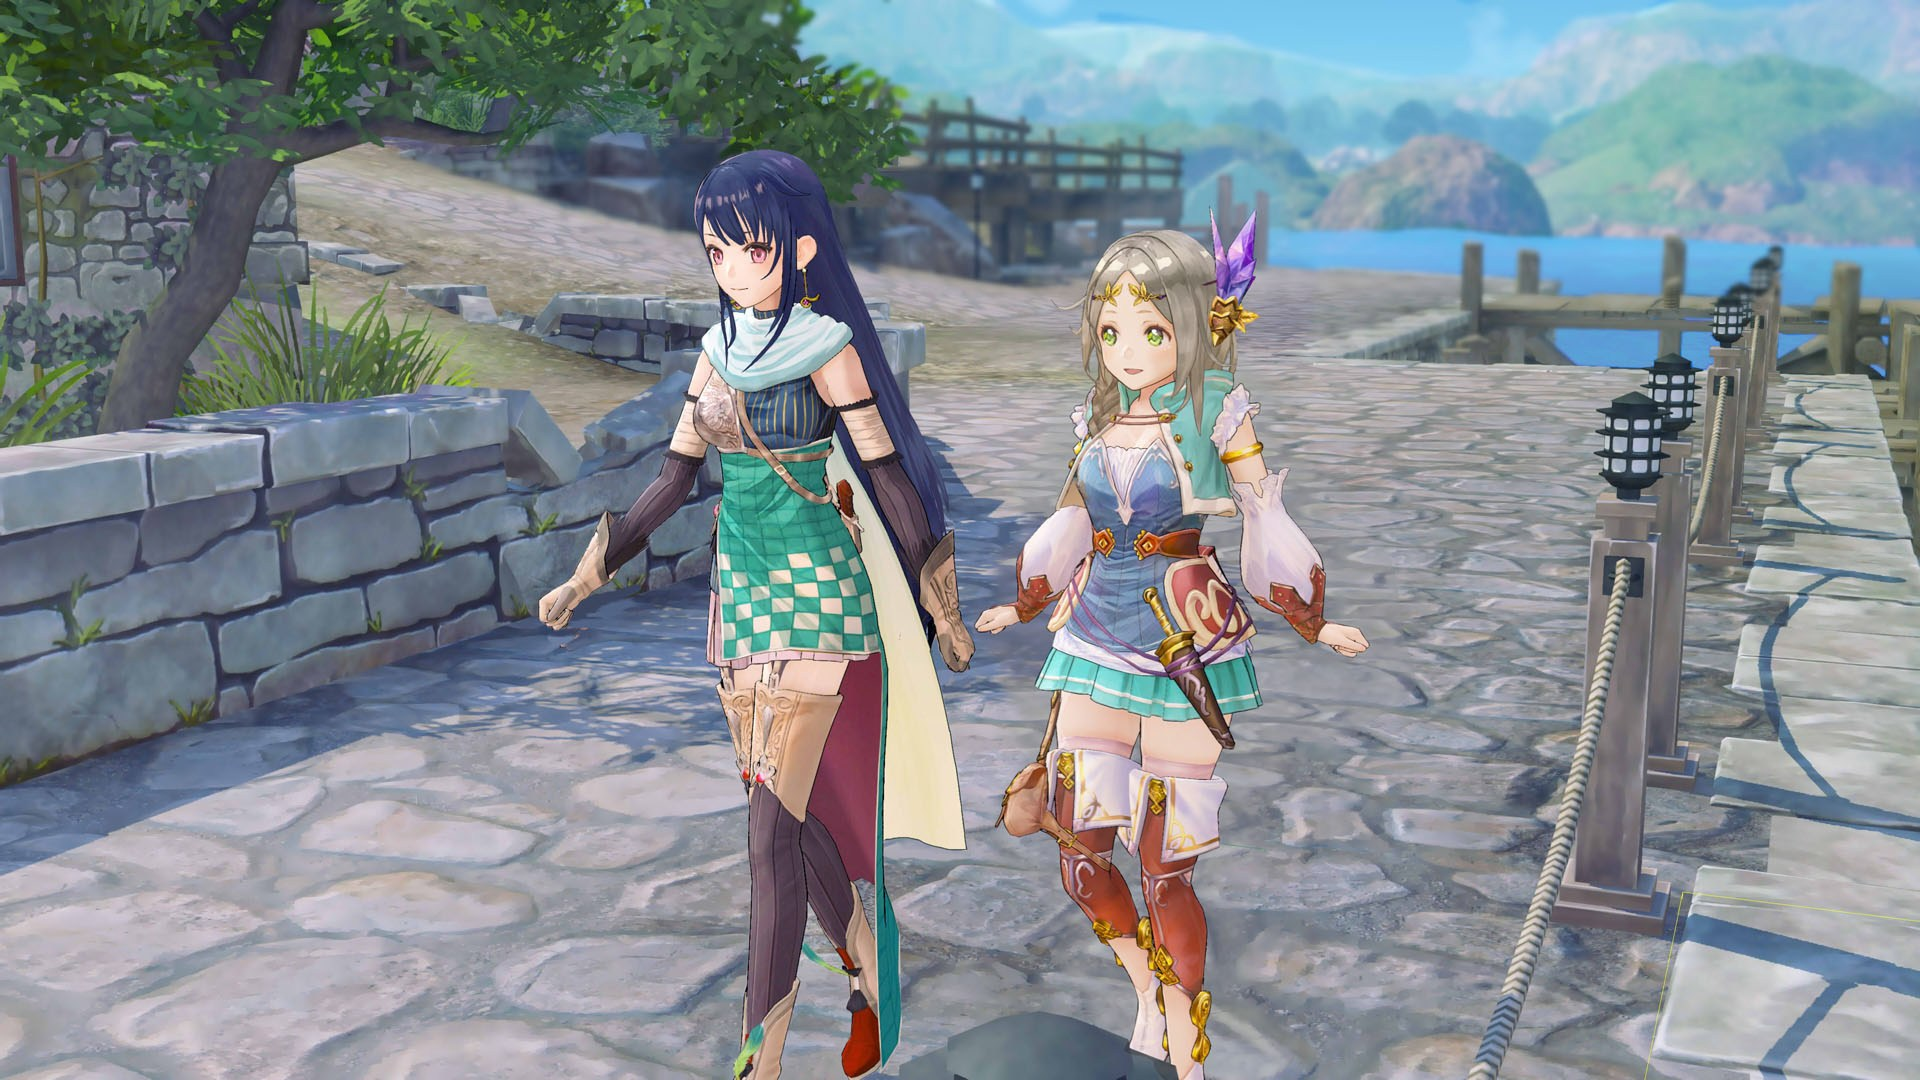 atelier firis the alchemist and the mysterious journey review ps4 series has received several games they all stand out on their own so that there is no need to play them in release order the only time the story